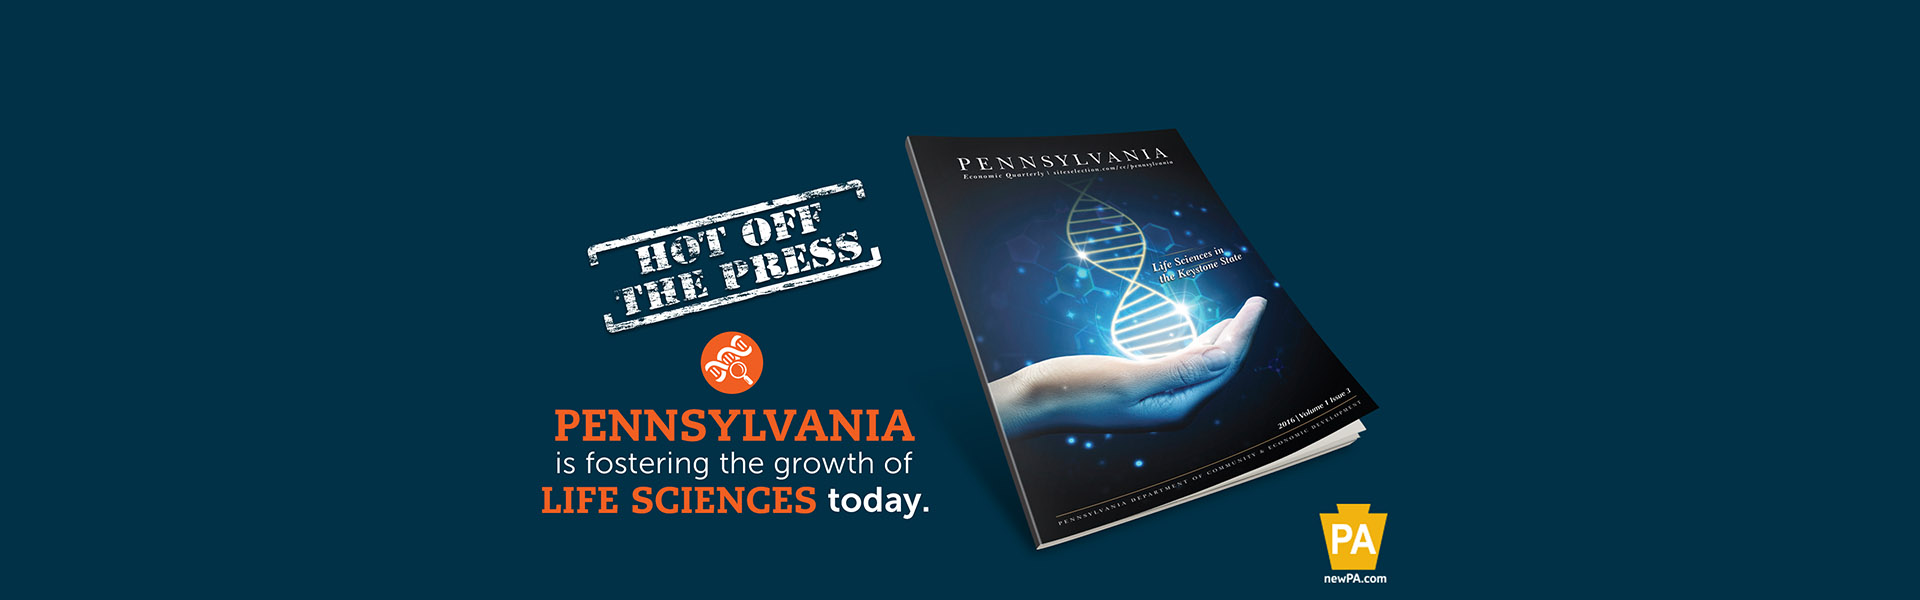 EconQuarterly-3_LifeSciences_newPA_1920x600